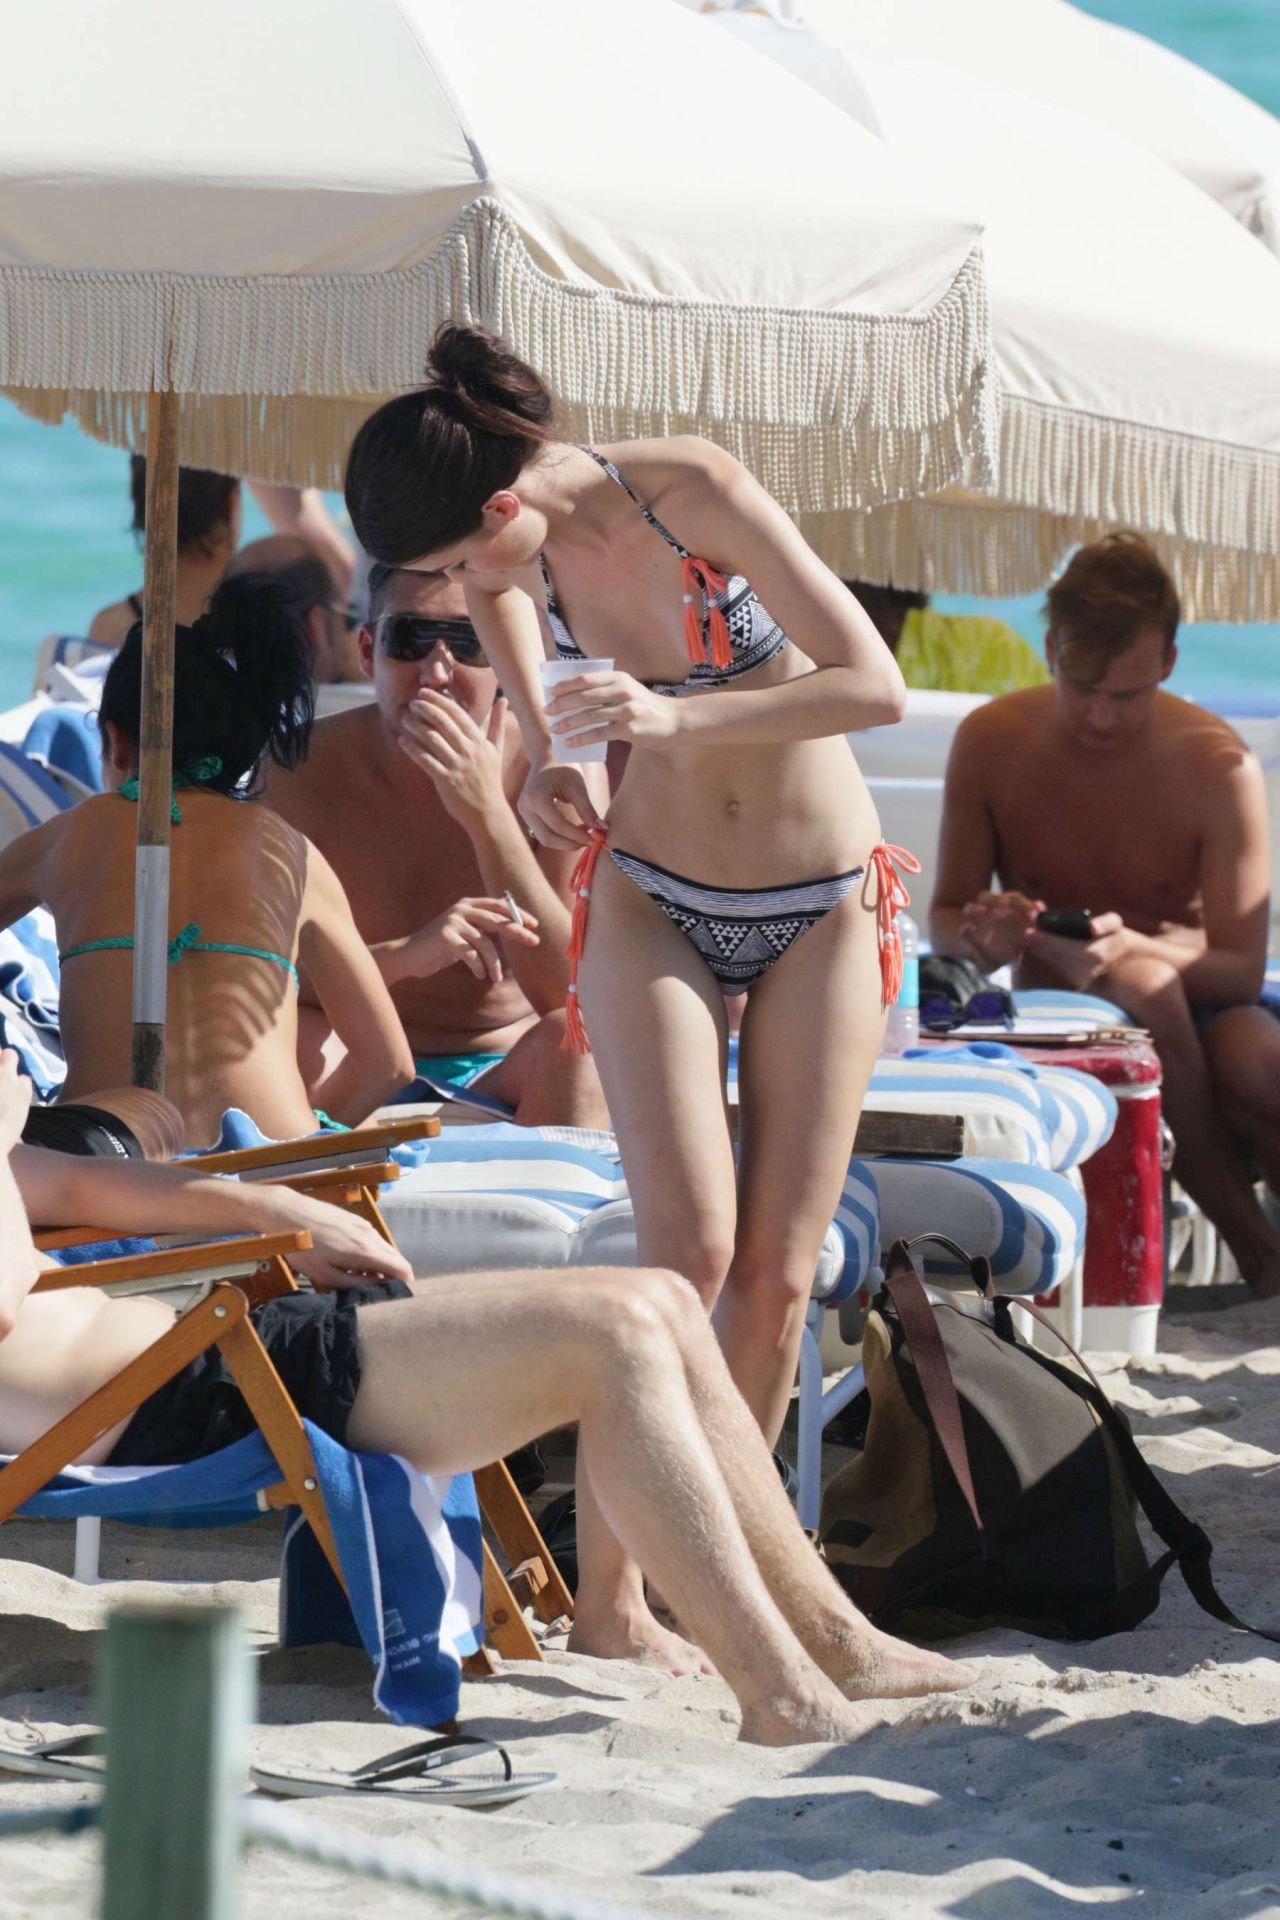 Lena Meyer Landrut Bikini Candids - Beach In Miami 1132016-5533